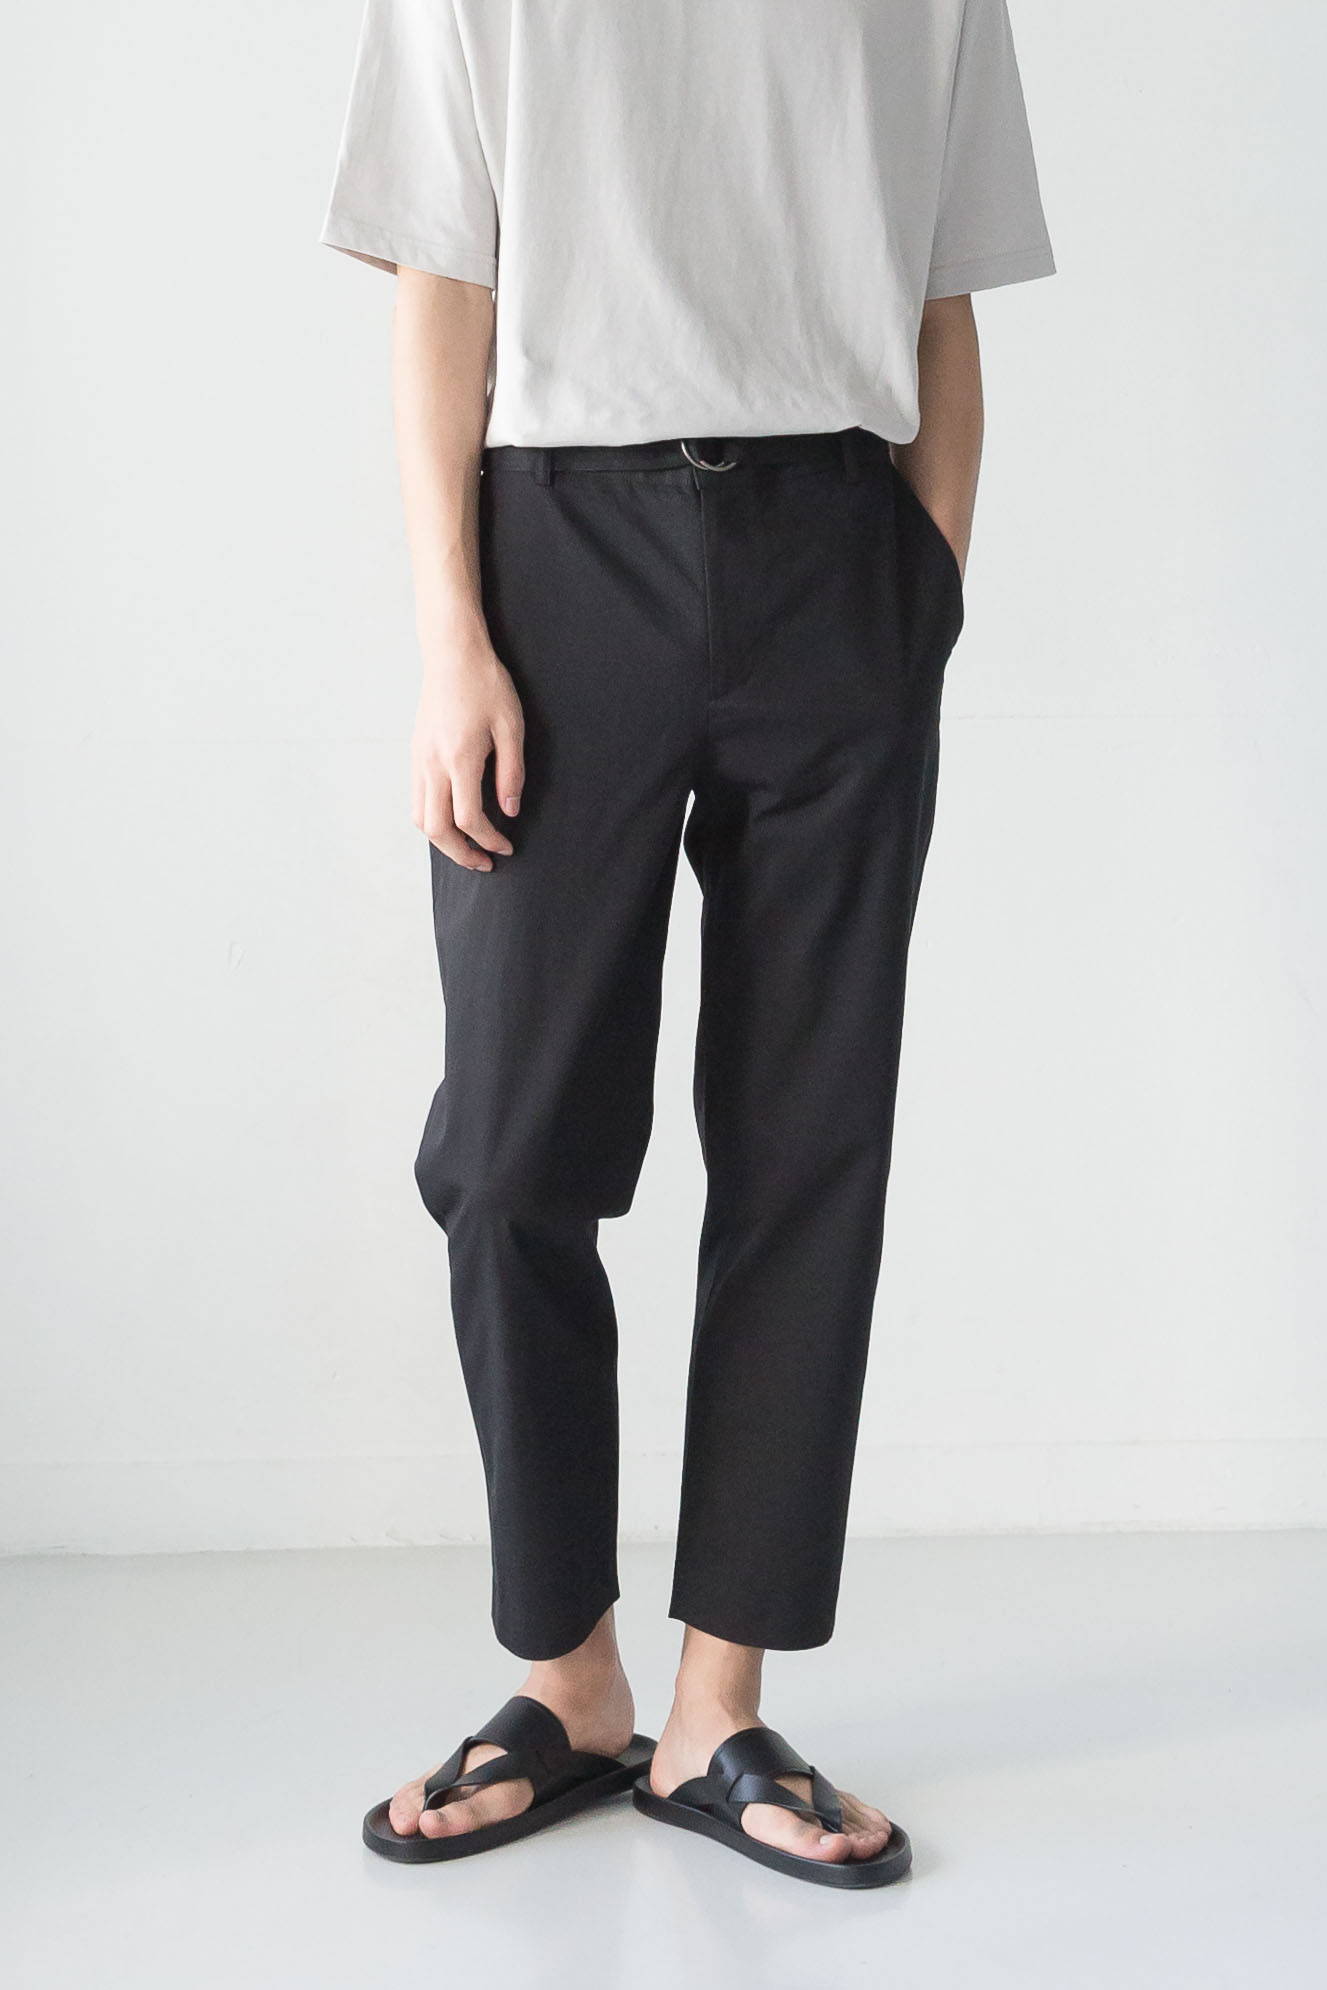 DAILY PANTS (ring belt, 3 colors)